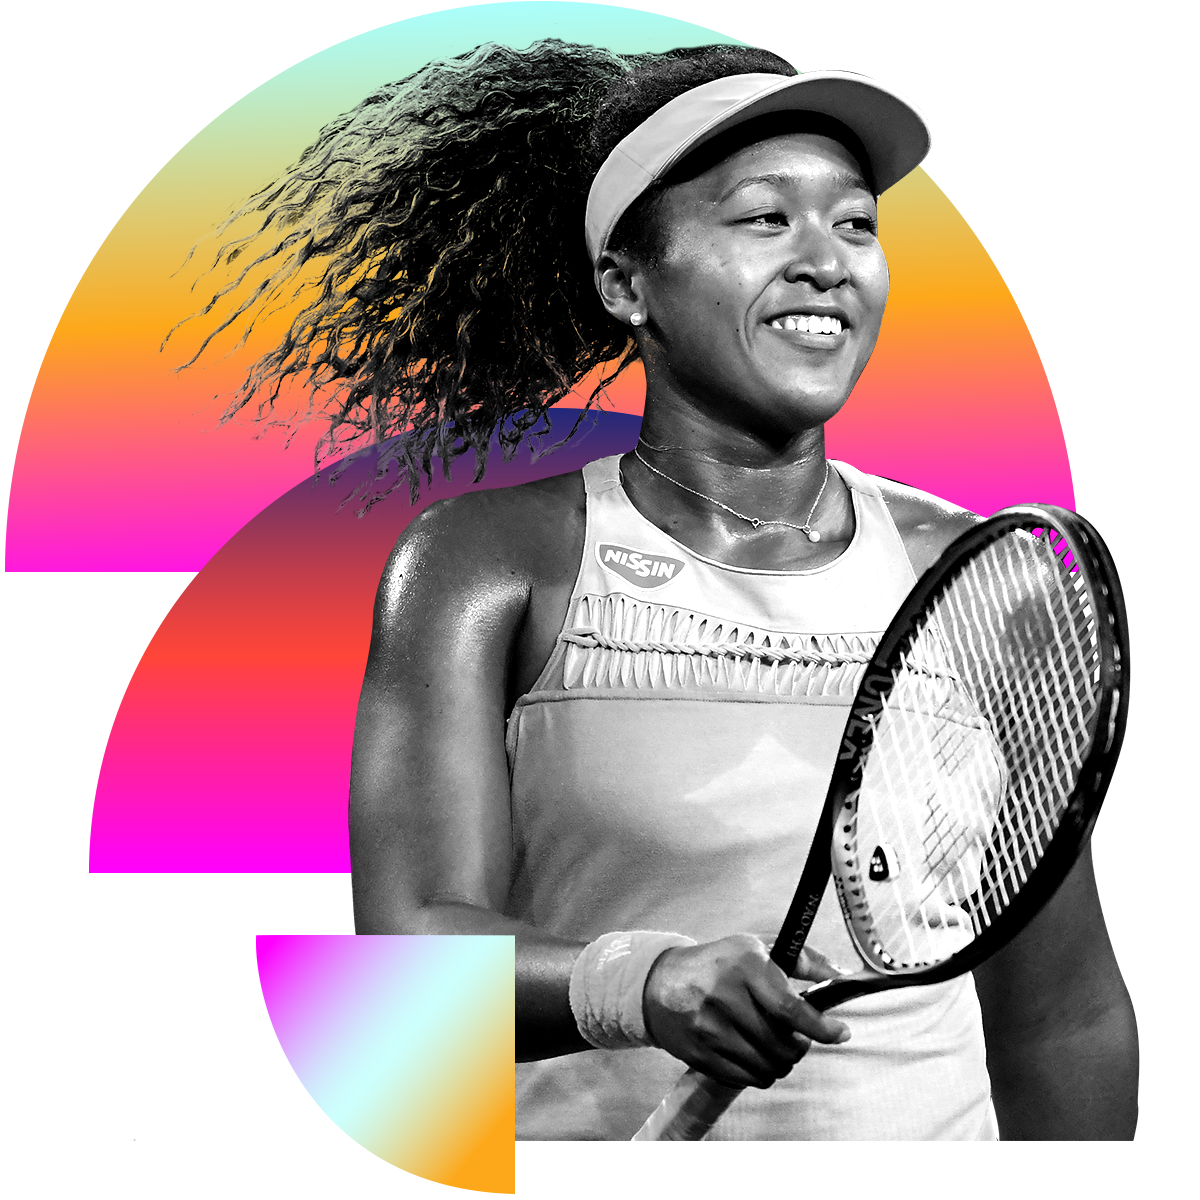 Photo illustration of Naomi Osaka in black and white surrounded by colored gradients